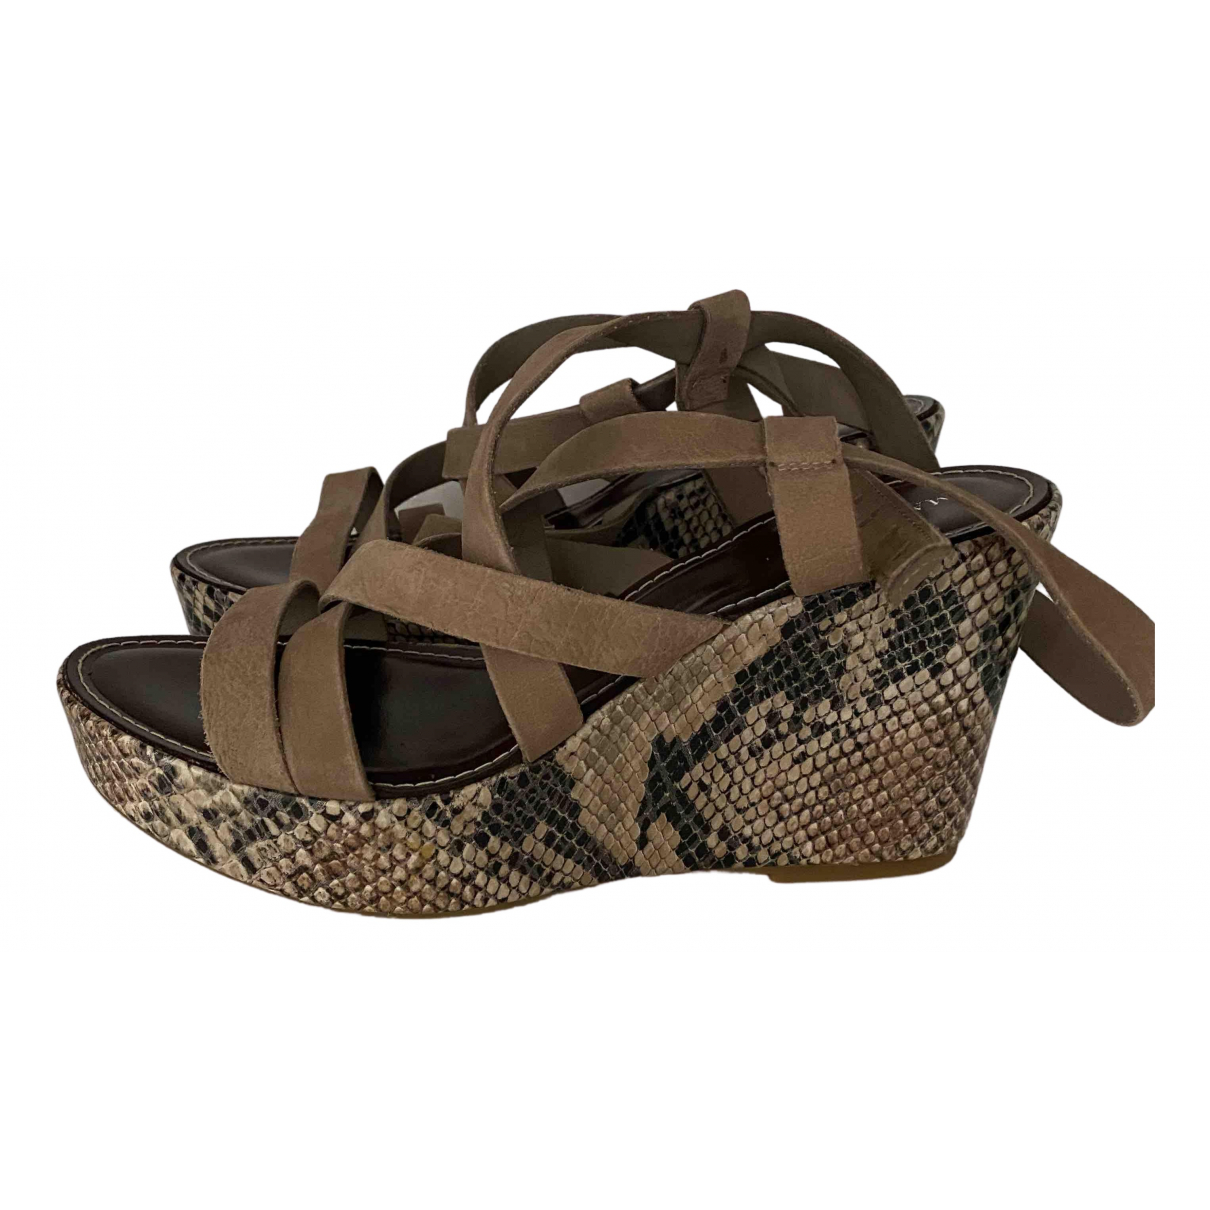 Marella N Beige Suede Sandals for Women 40 EU